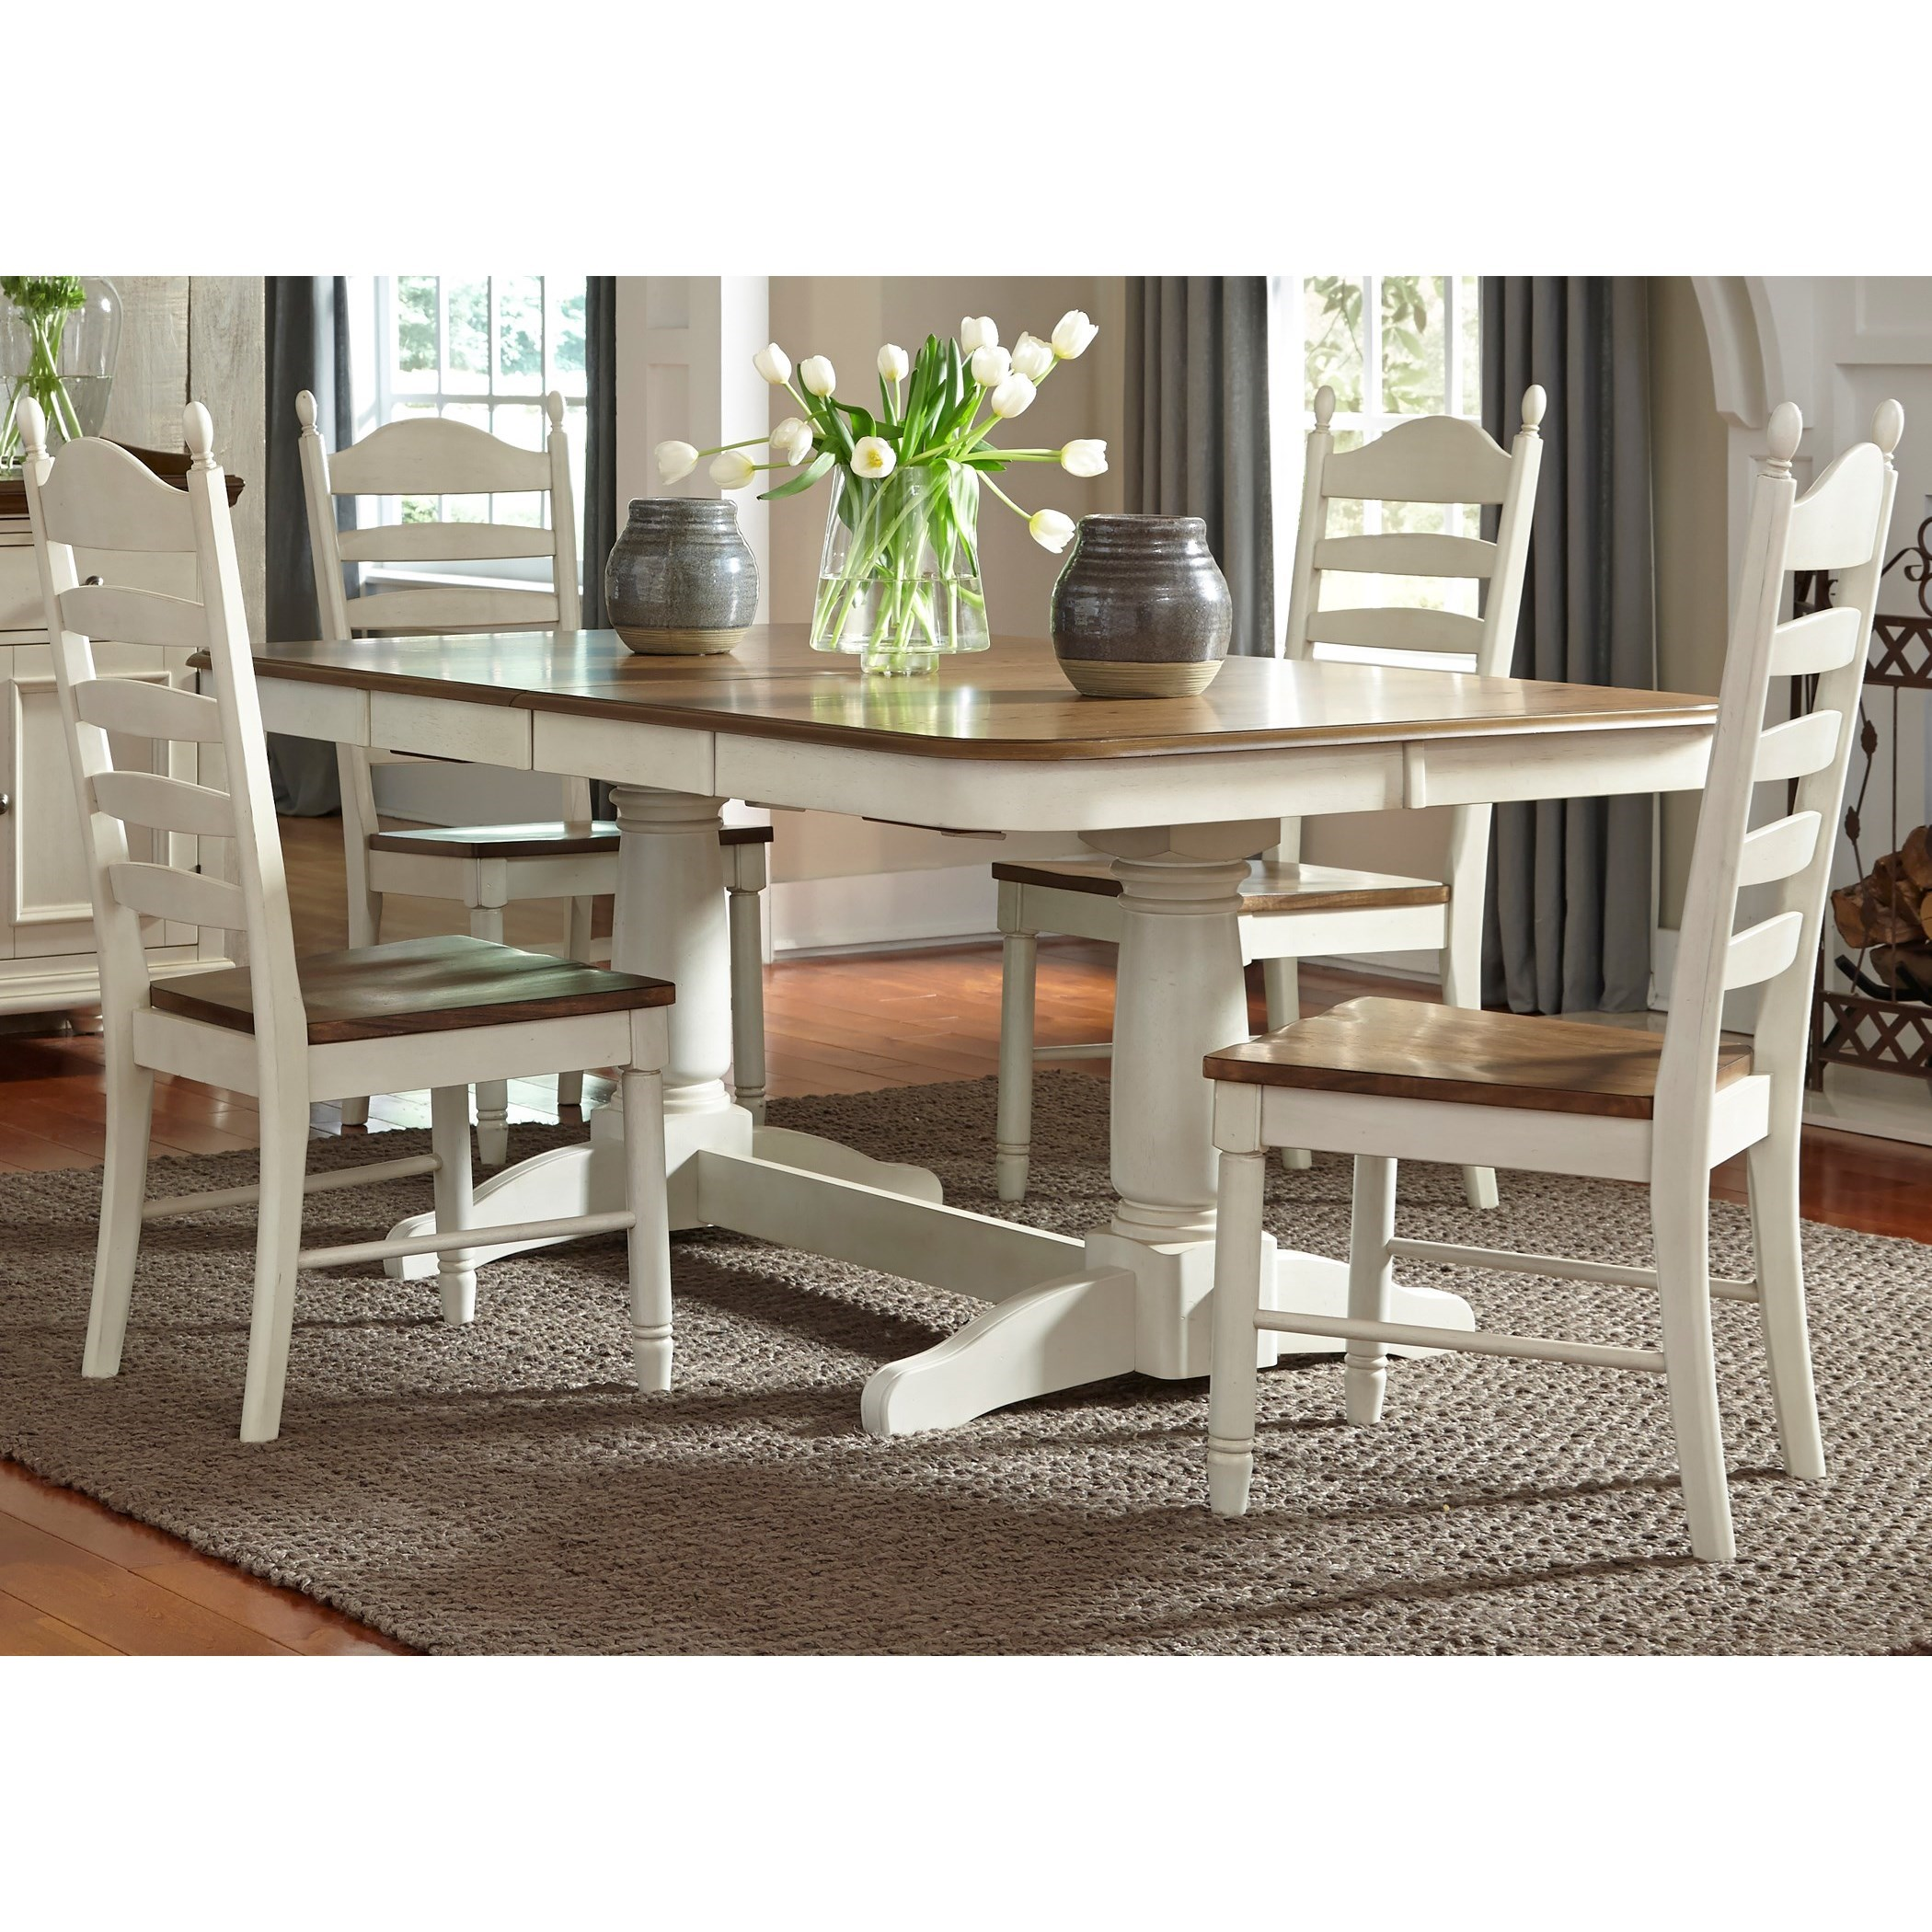 5 Piece Double Pedestal Table & Chair Set